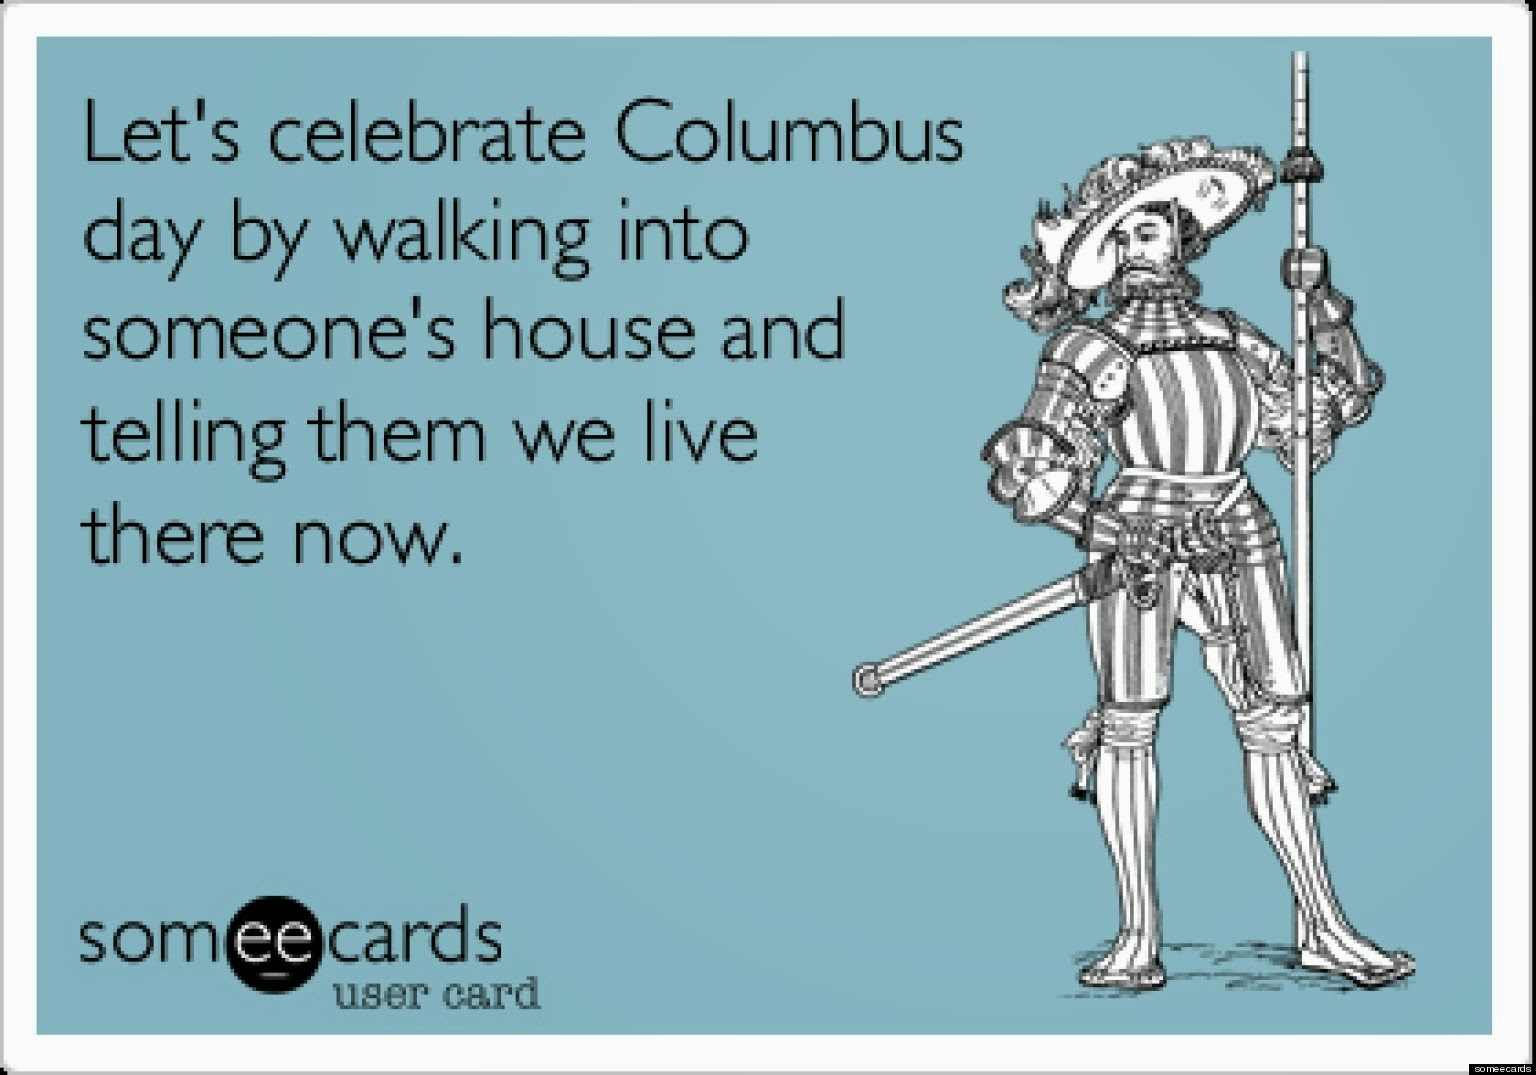 goodbye columbus day Austin, texas city officials voted to completely replace columbus day with indigenous people's day they voted to remove columbus day from city calendars calling for public schools to teach that columbus is not a positive role model the resolution says that honoring christopher columbus' role in.